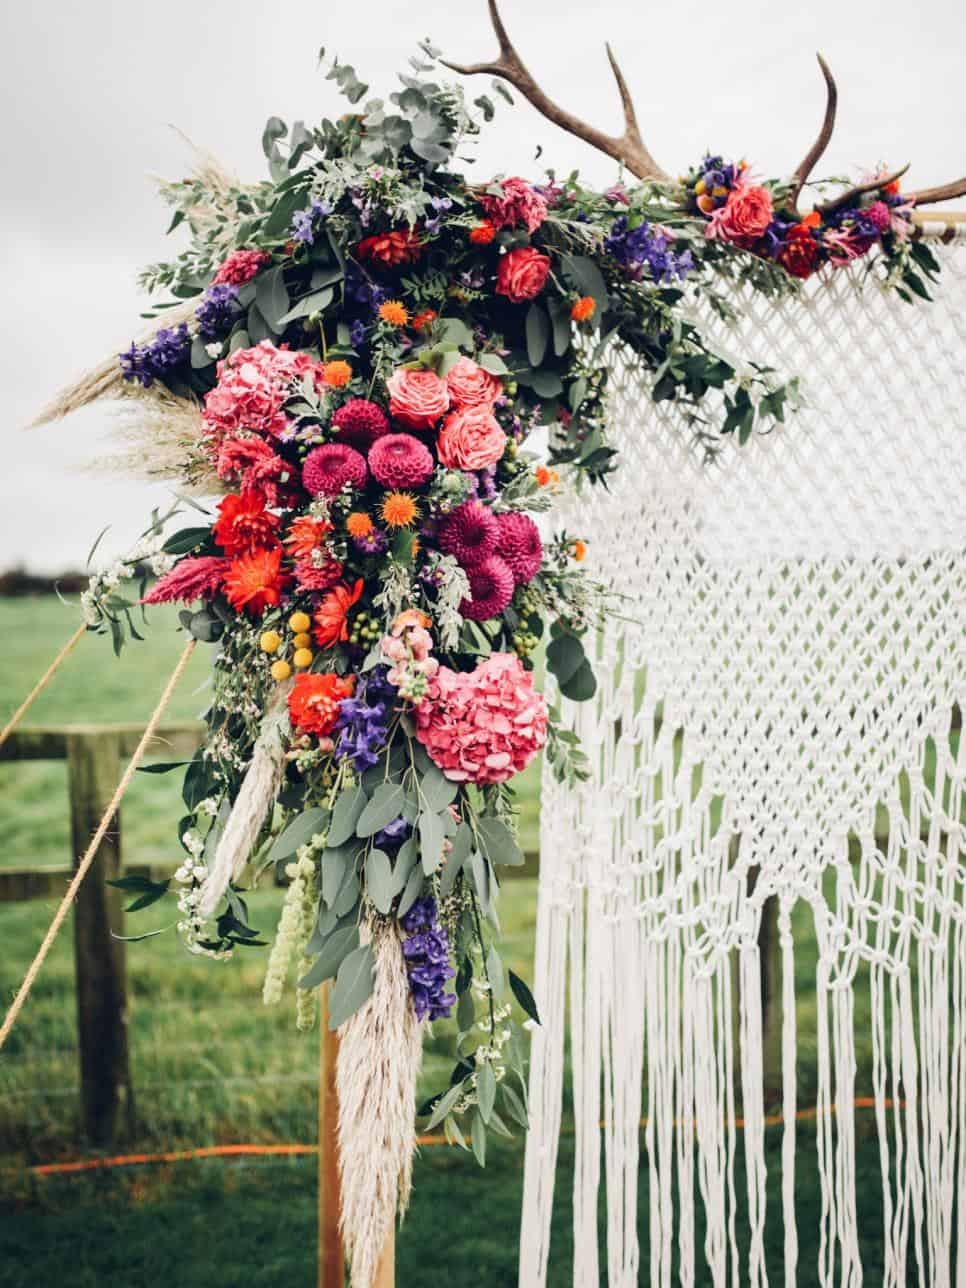 15 diy wedding arches to highlight your ceremony with bohemian style wedding arch diy solutioingenieria Choice Image